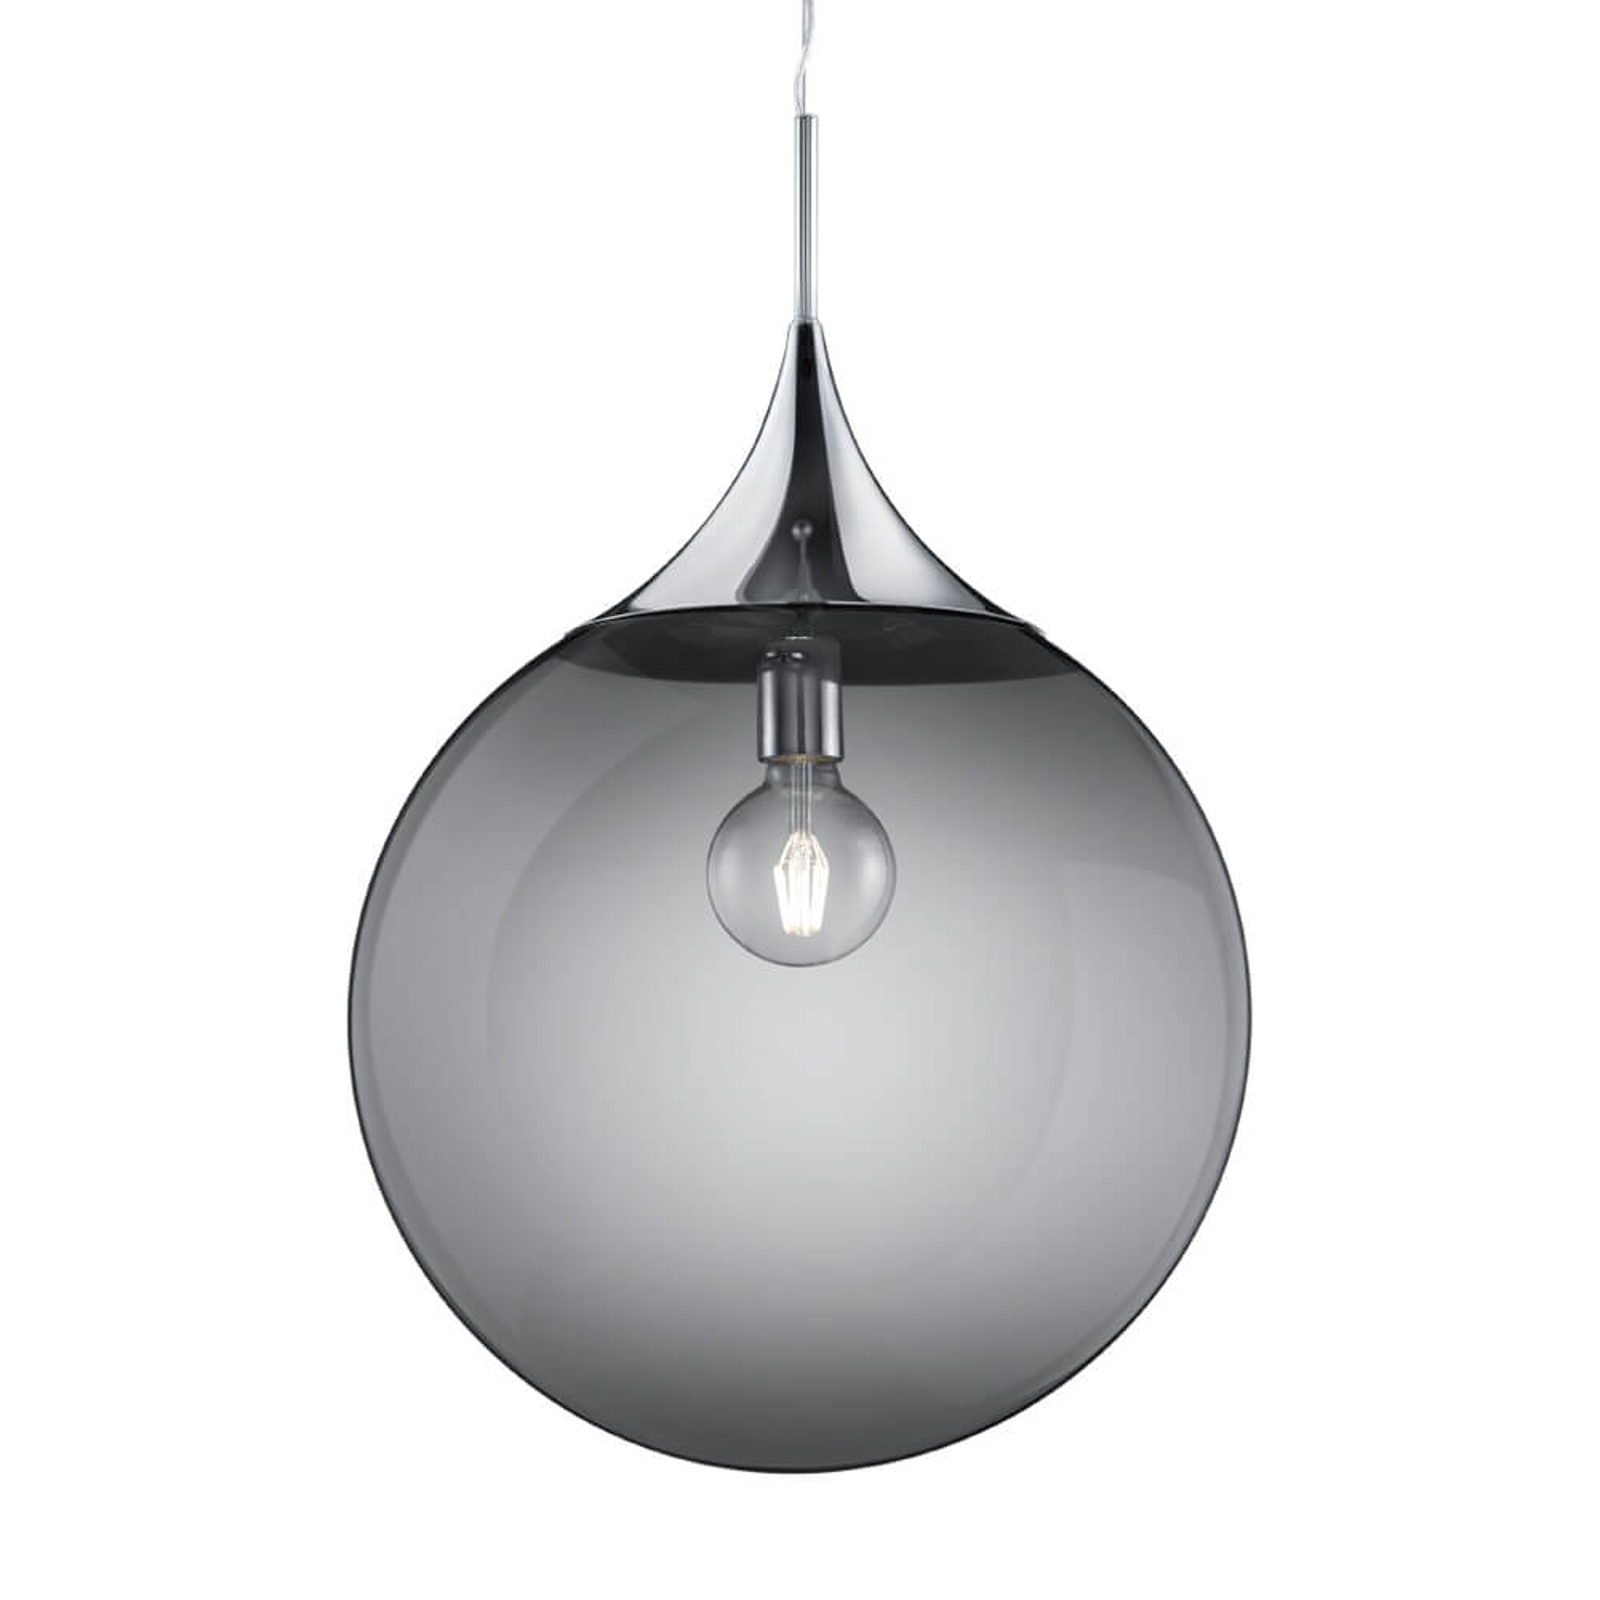 Suspension en verre exclusive Midas, Ø 45 cm